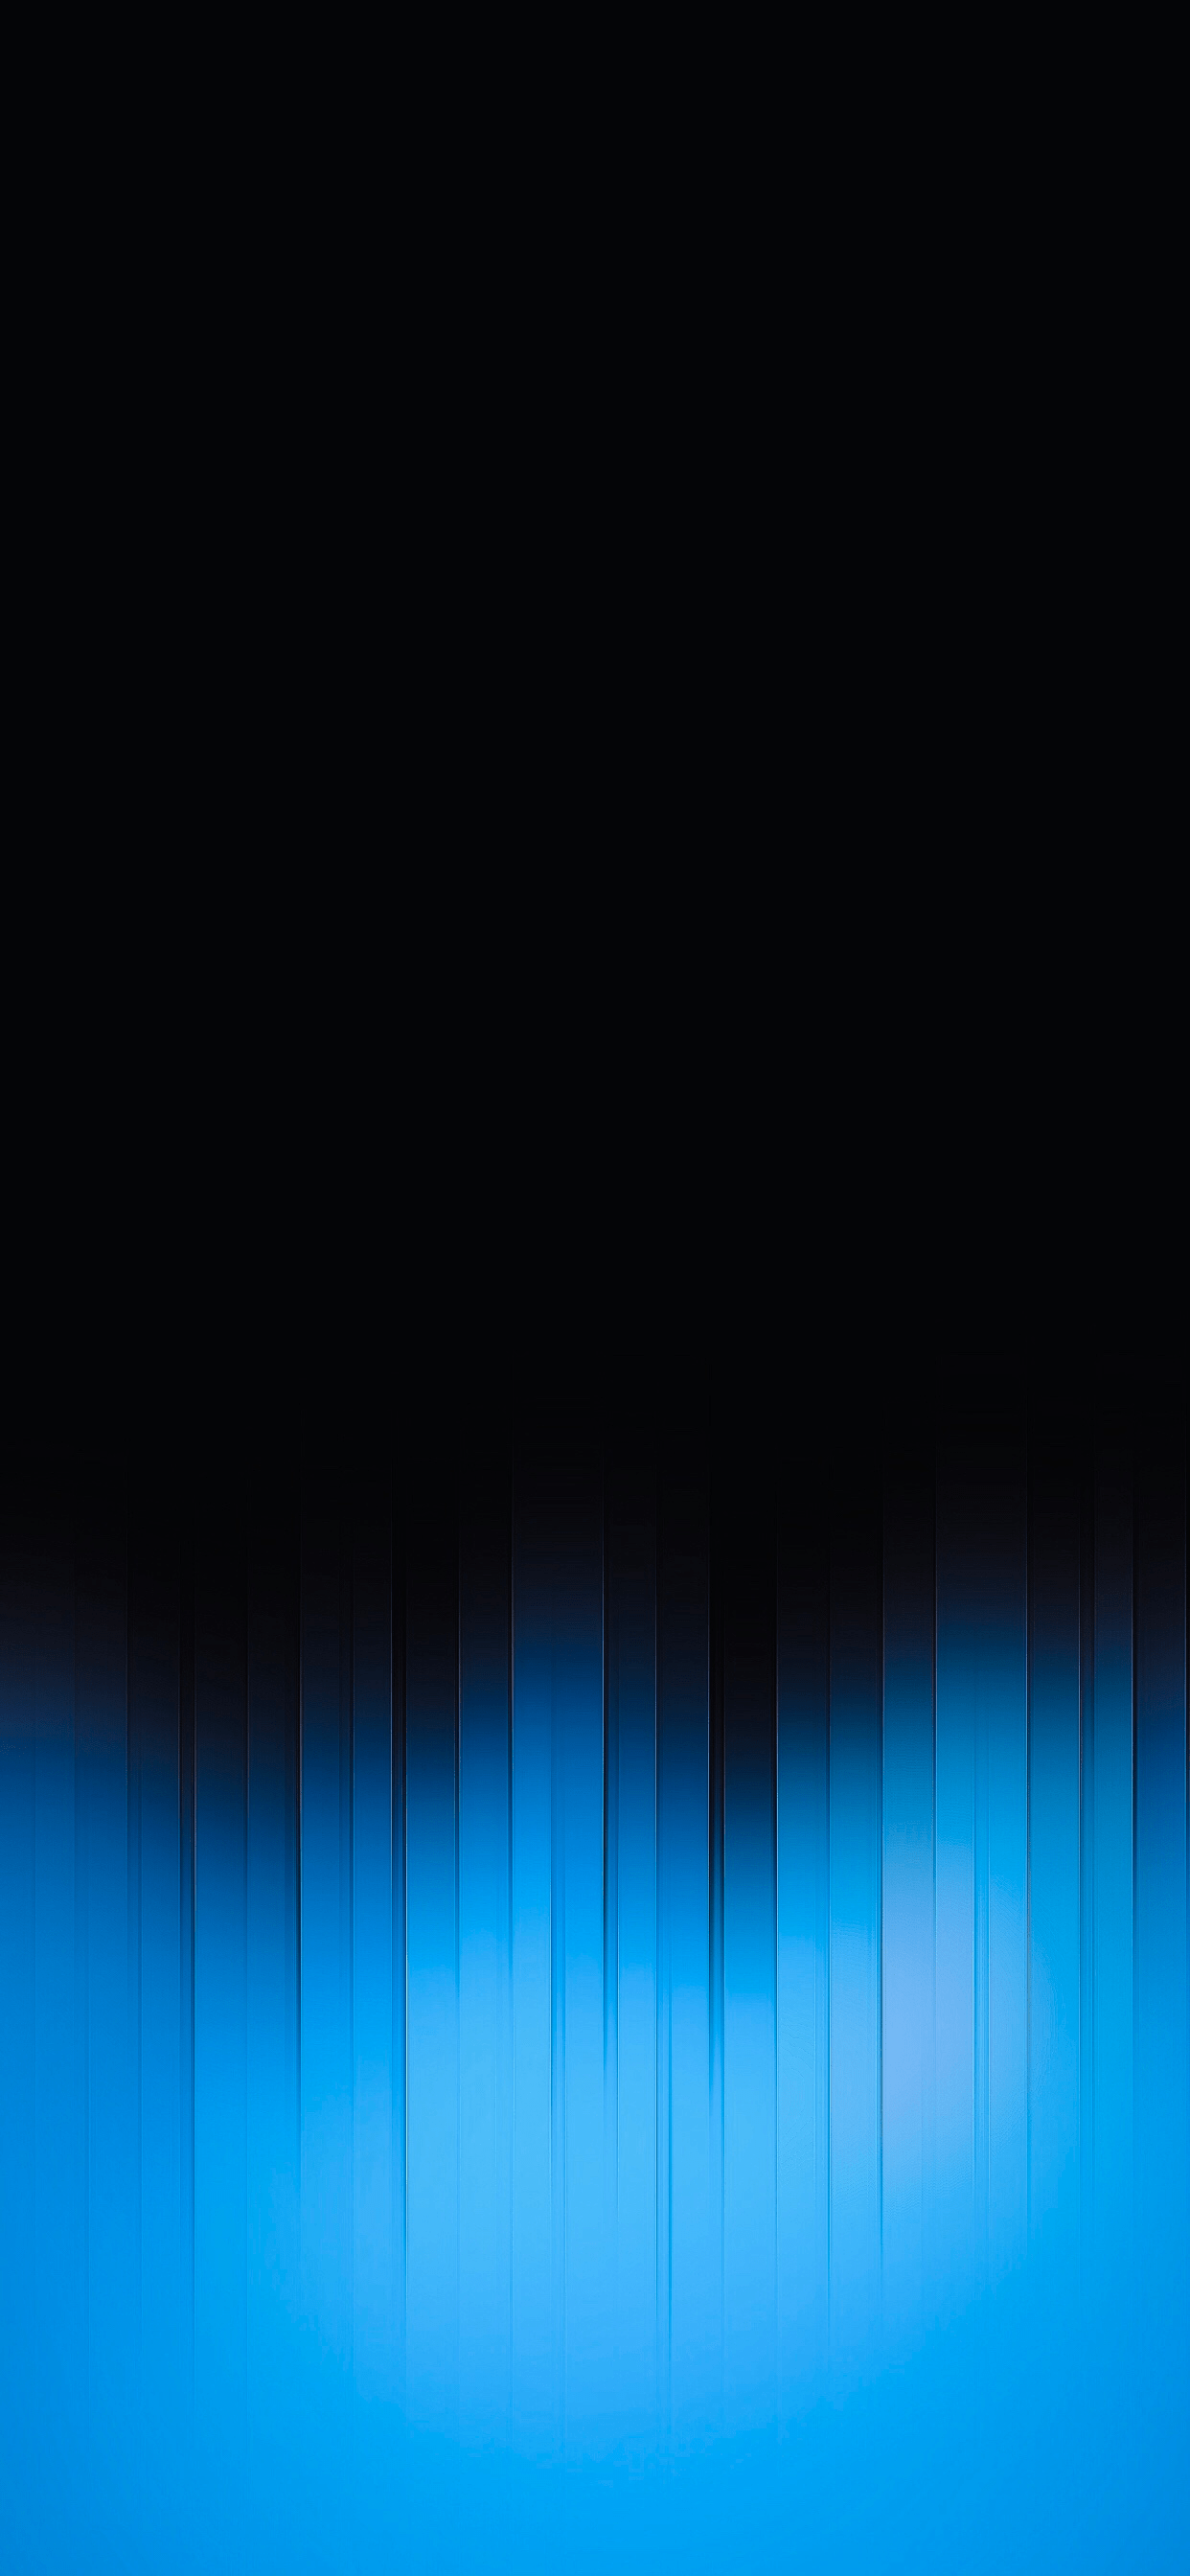 iPhone wallpaper abstract Blue Abstract